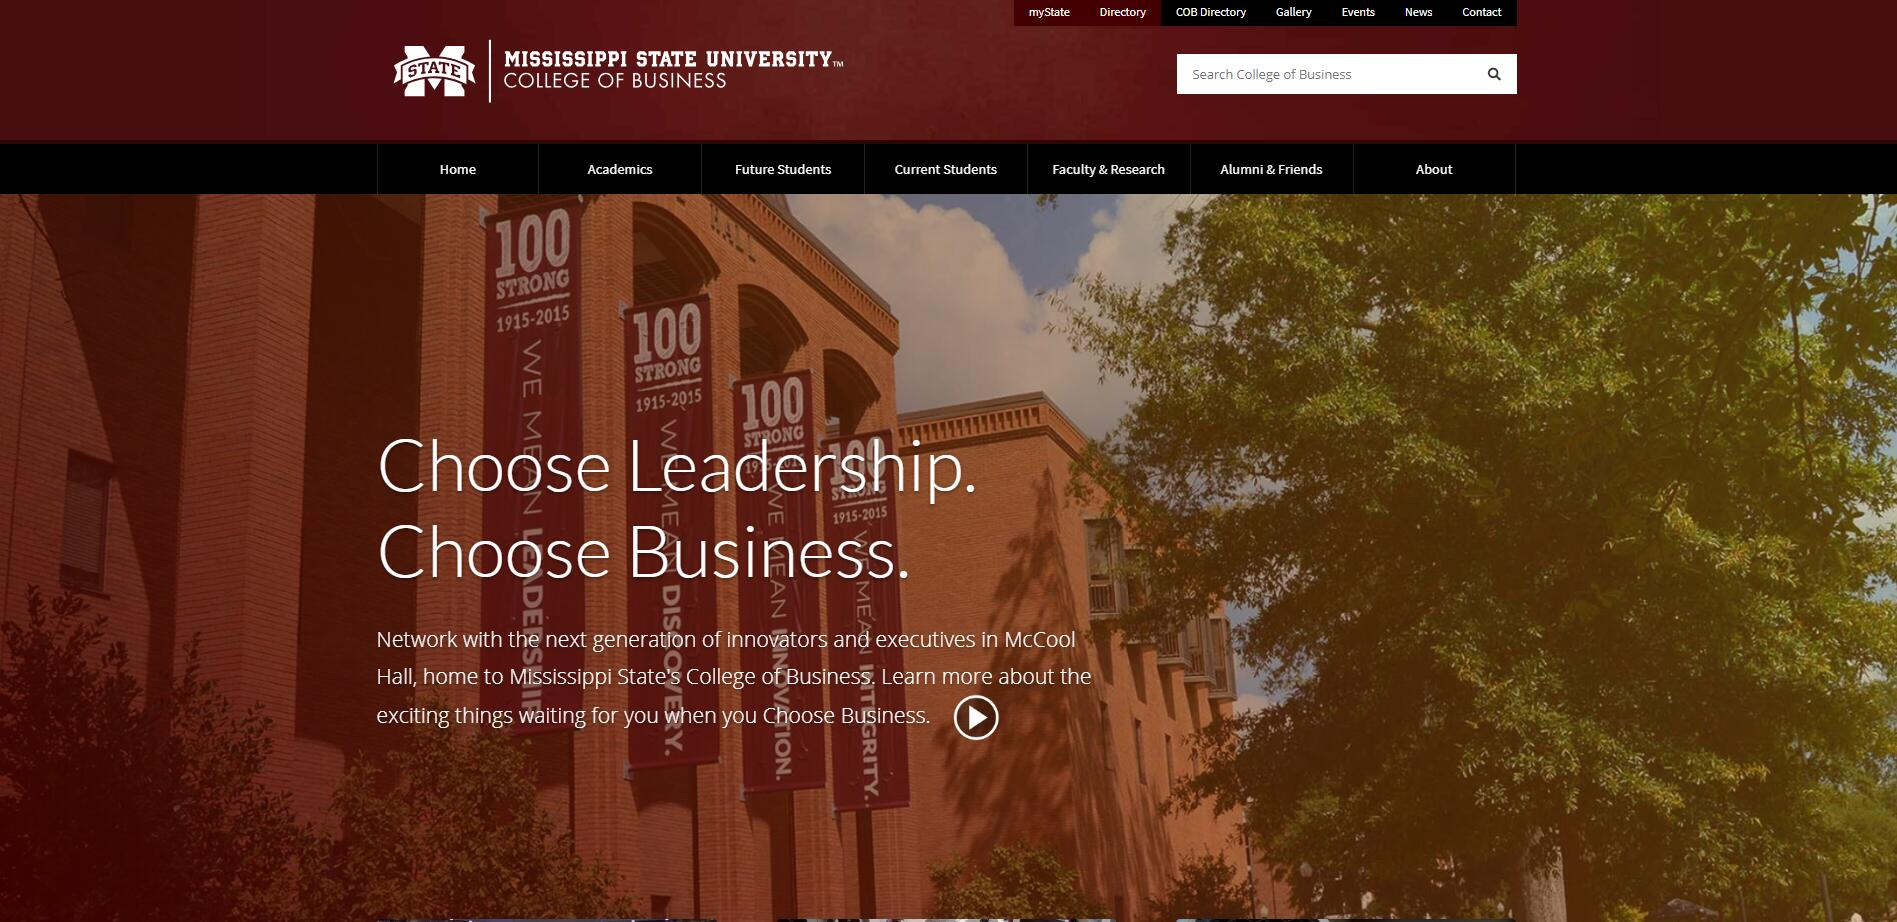 The College of Business at Mississippi State University